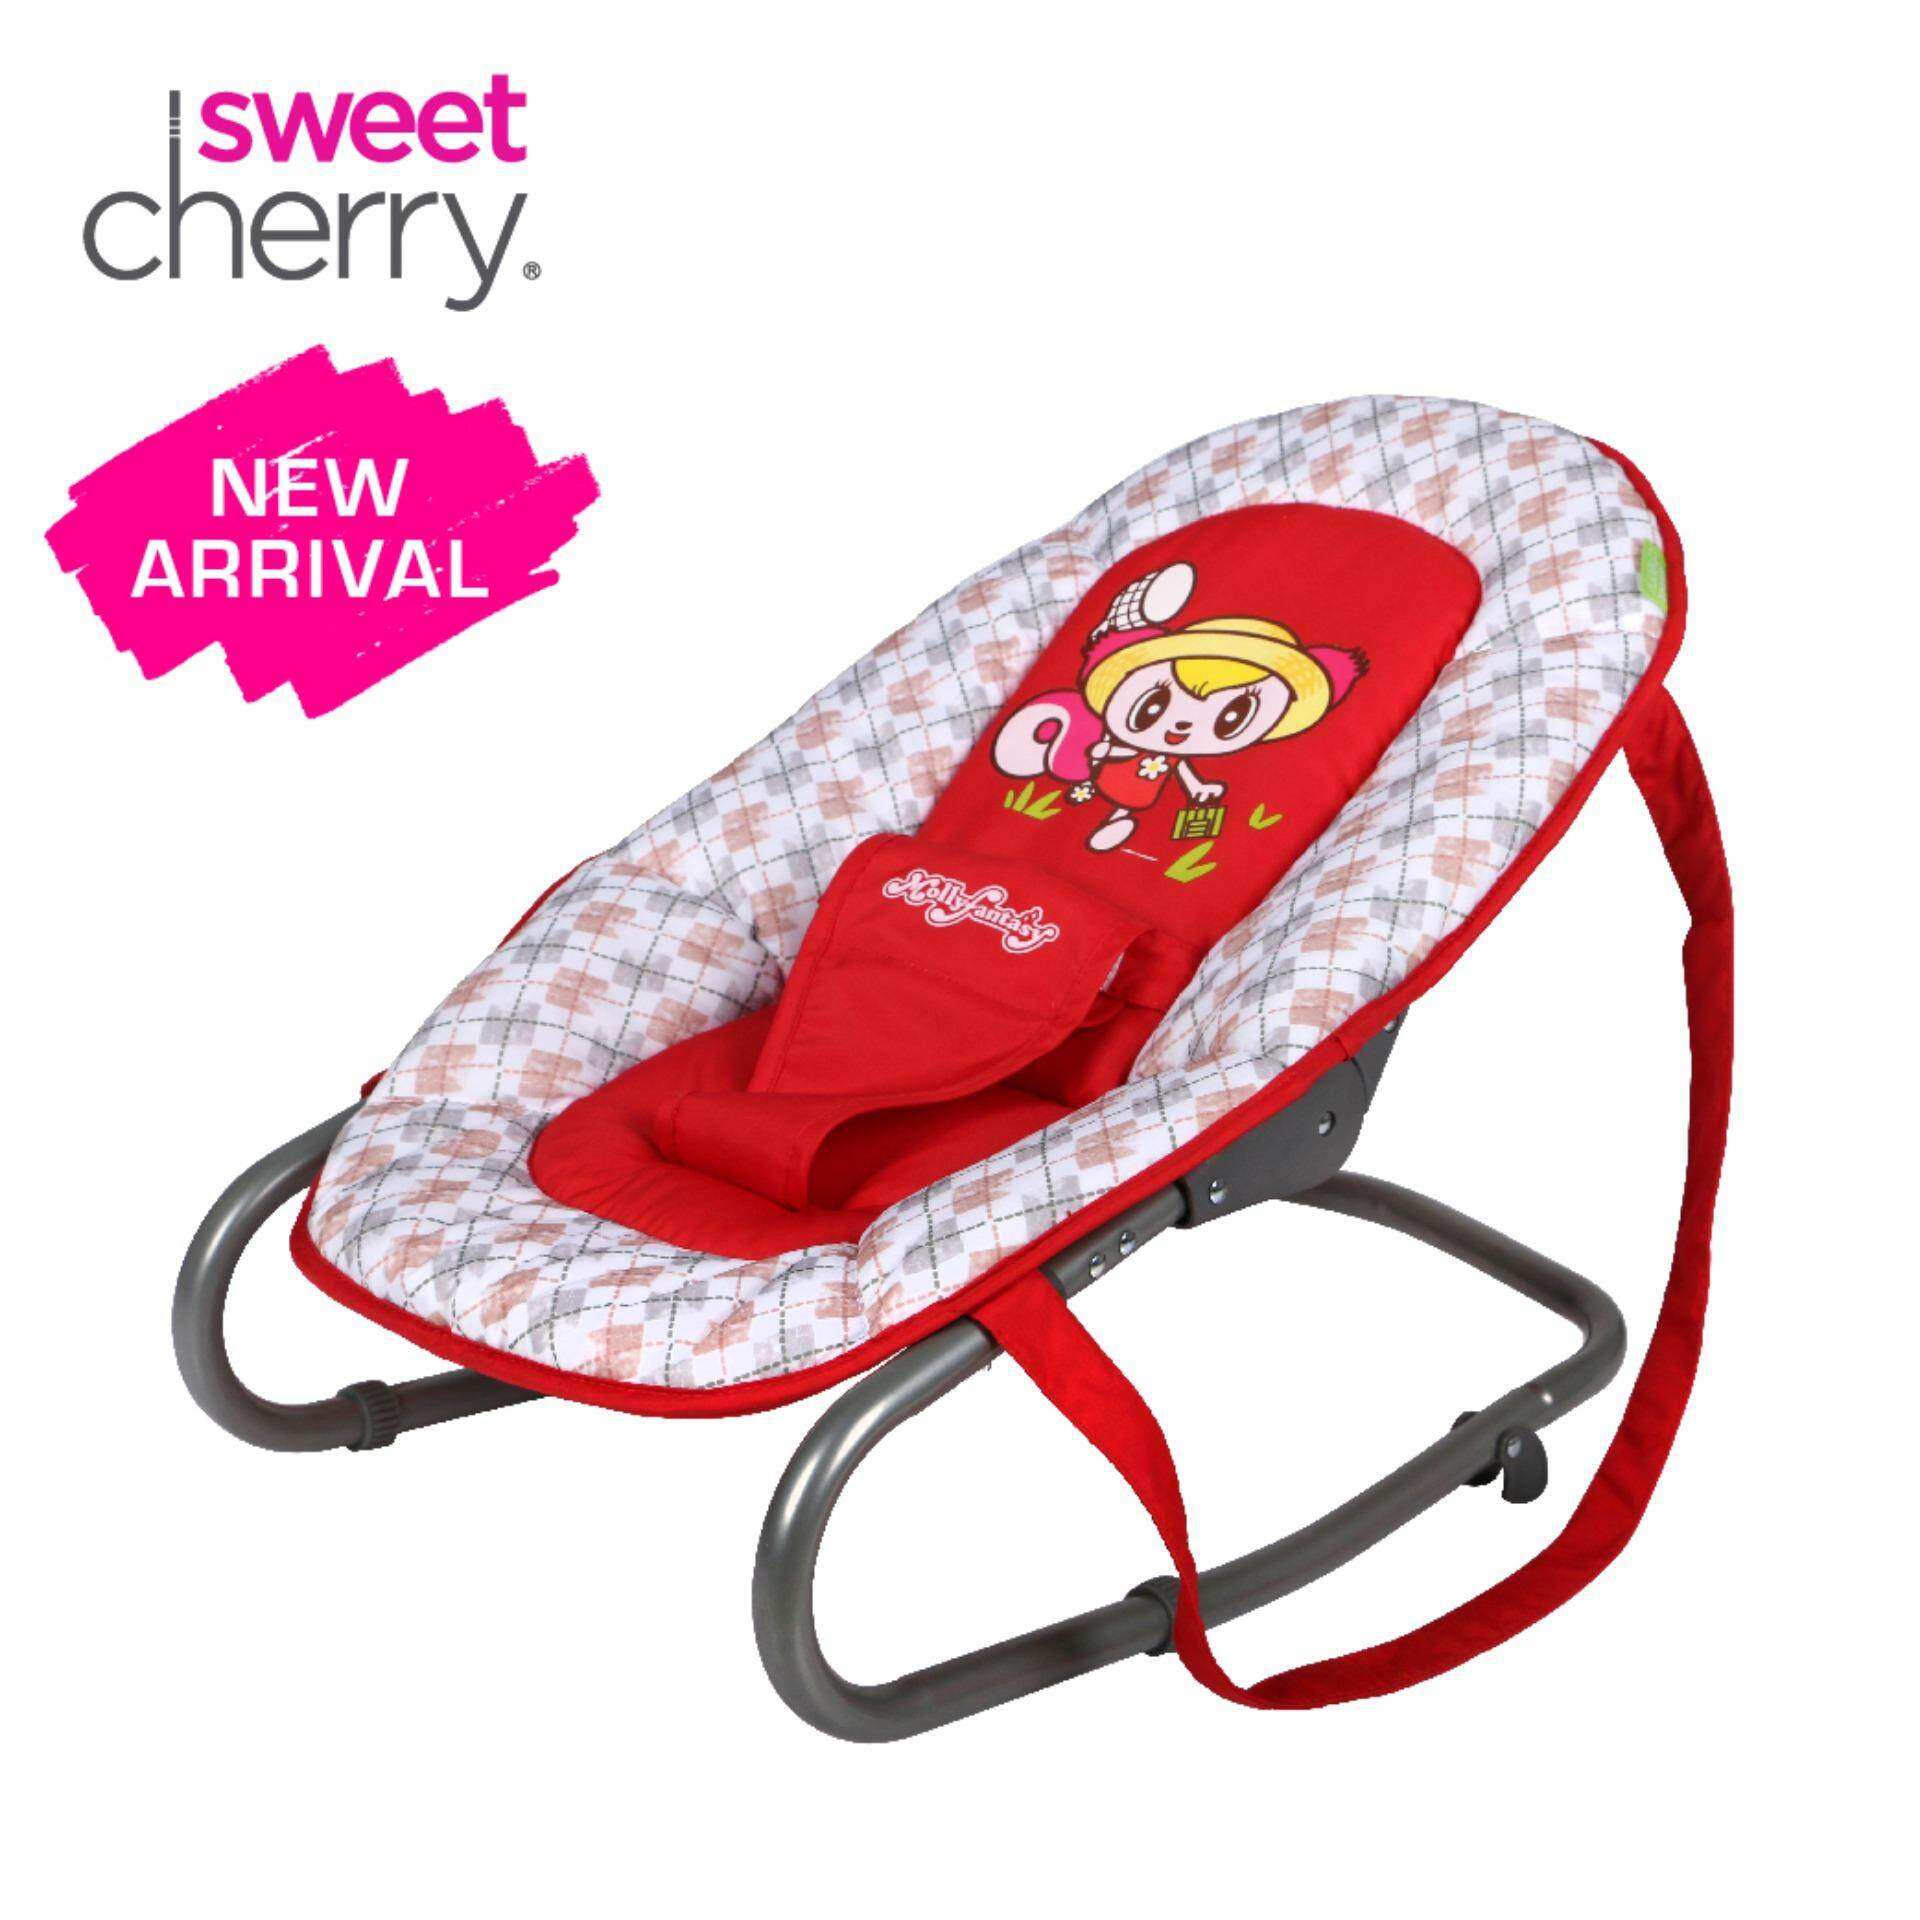 swing chair penang that folds out into a bed swings jumpers bouncers buy at best sweet cherry mf03 molly fantasy bouncer red